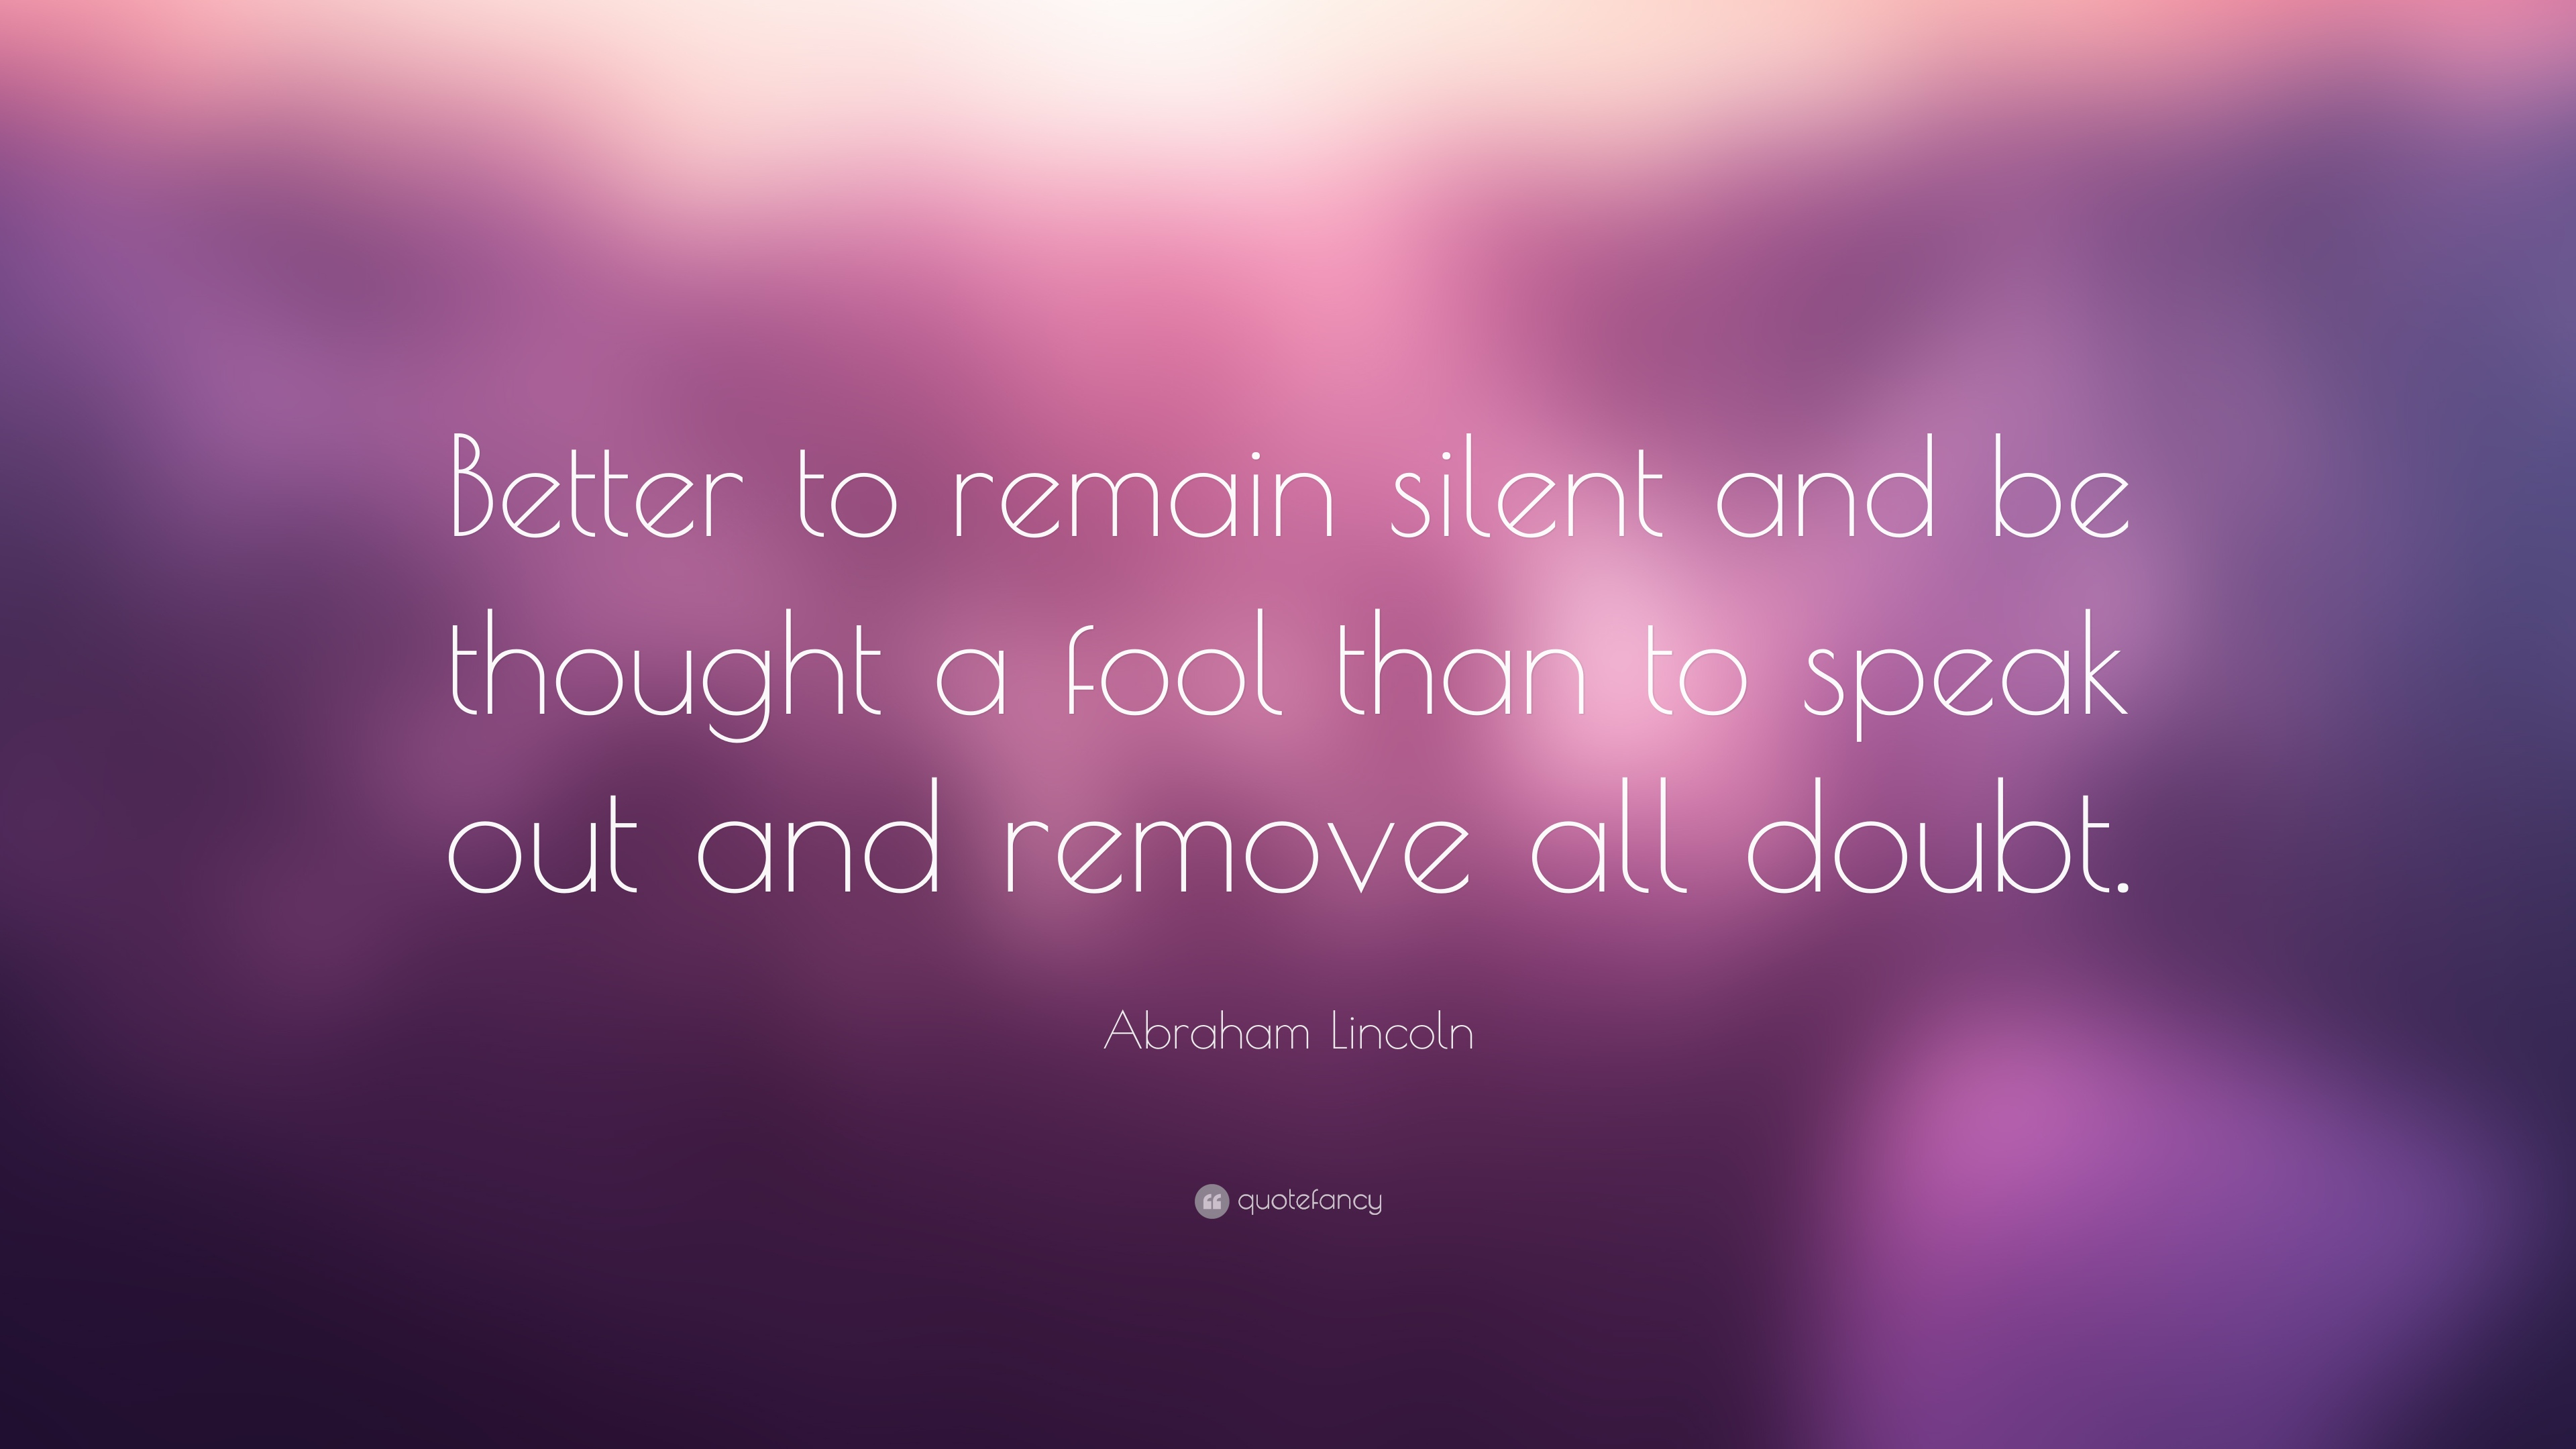 Abraham lincoln quote fool - Abraham Lincoln Quote Better To Remain Silent And Be Thought A Fool Than To